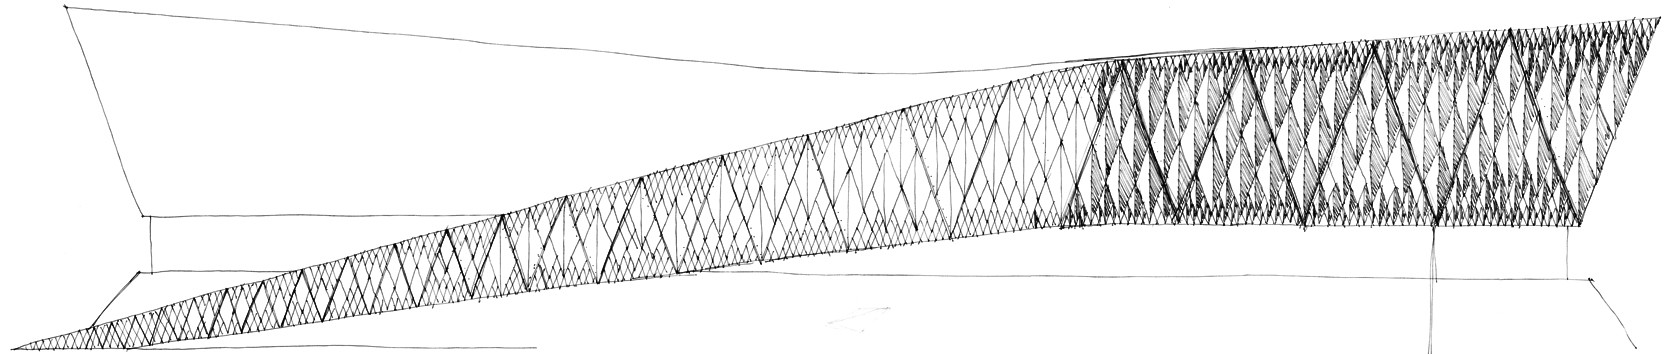 54d090a1e58ece5c5e0004db Section 2 besides Glorioustoview besides Gallery Ss2845 together with 5014e7da28ba0d5828000c00 Museum Of Liverpool 3xn Sketch additionally Section1 100. on gallery view